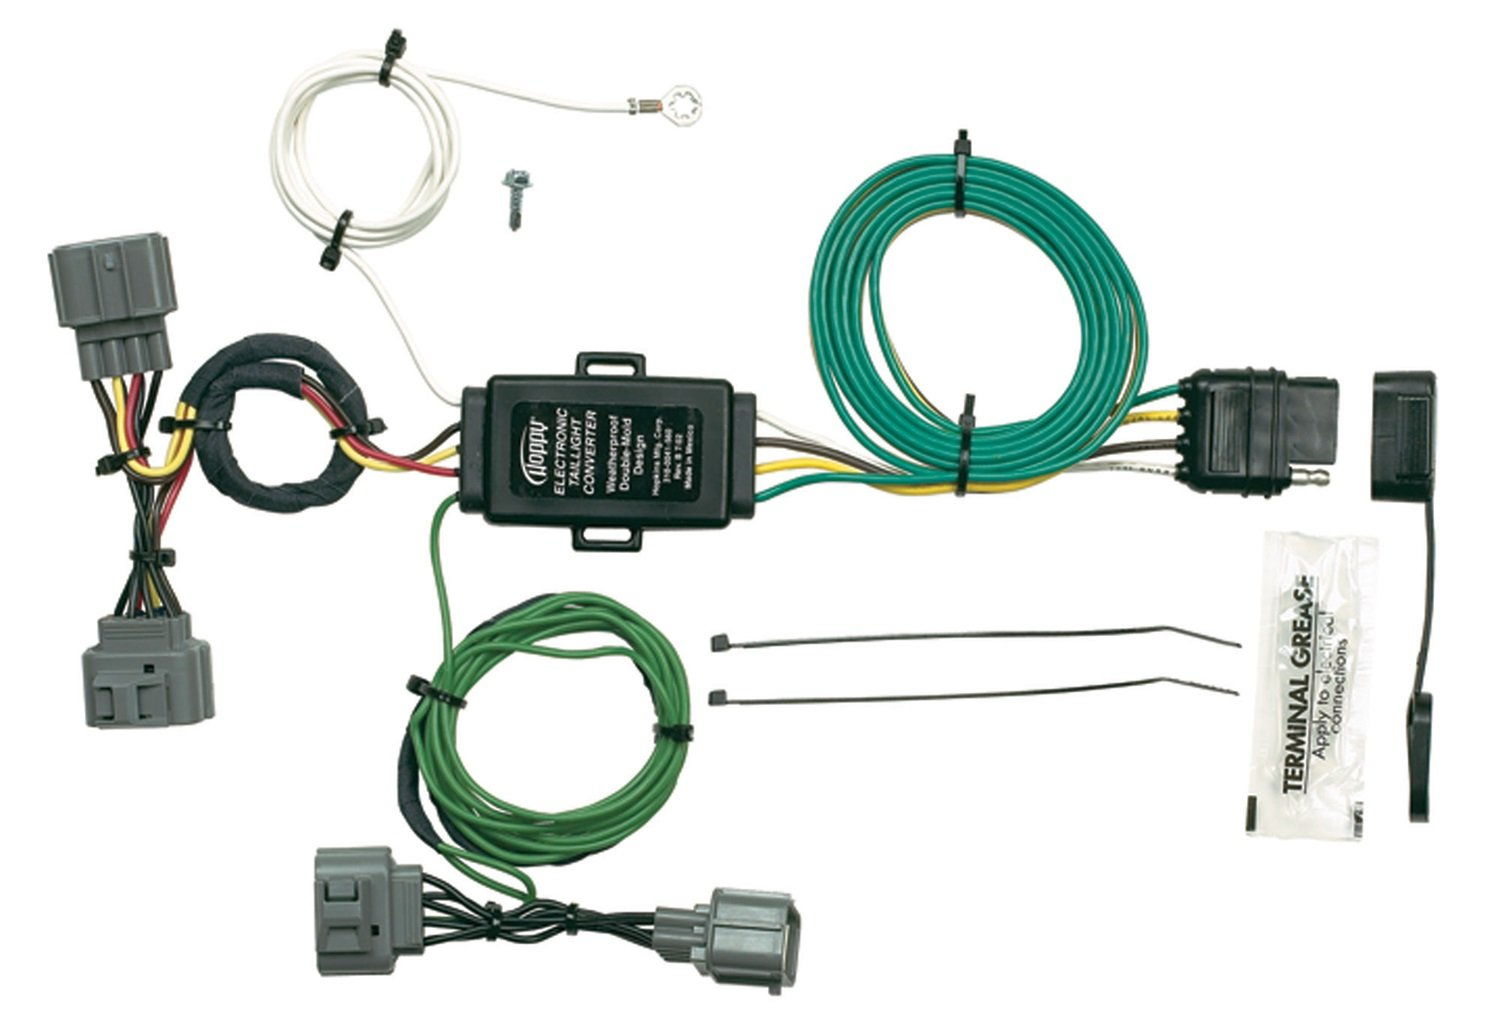 61uhFx0L6RL._SL1500_ amazon com hopkins 43125 plug in simple vehicle wiring kit honda ridgeline wiring harness towing at bayanpartner.co